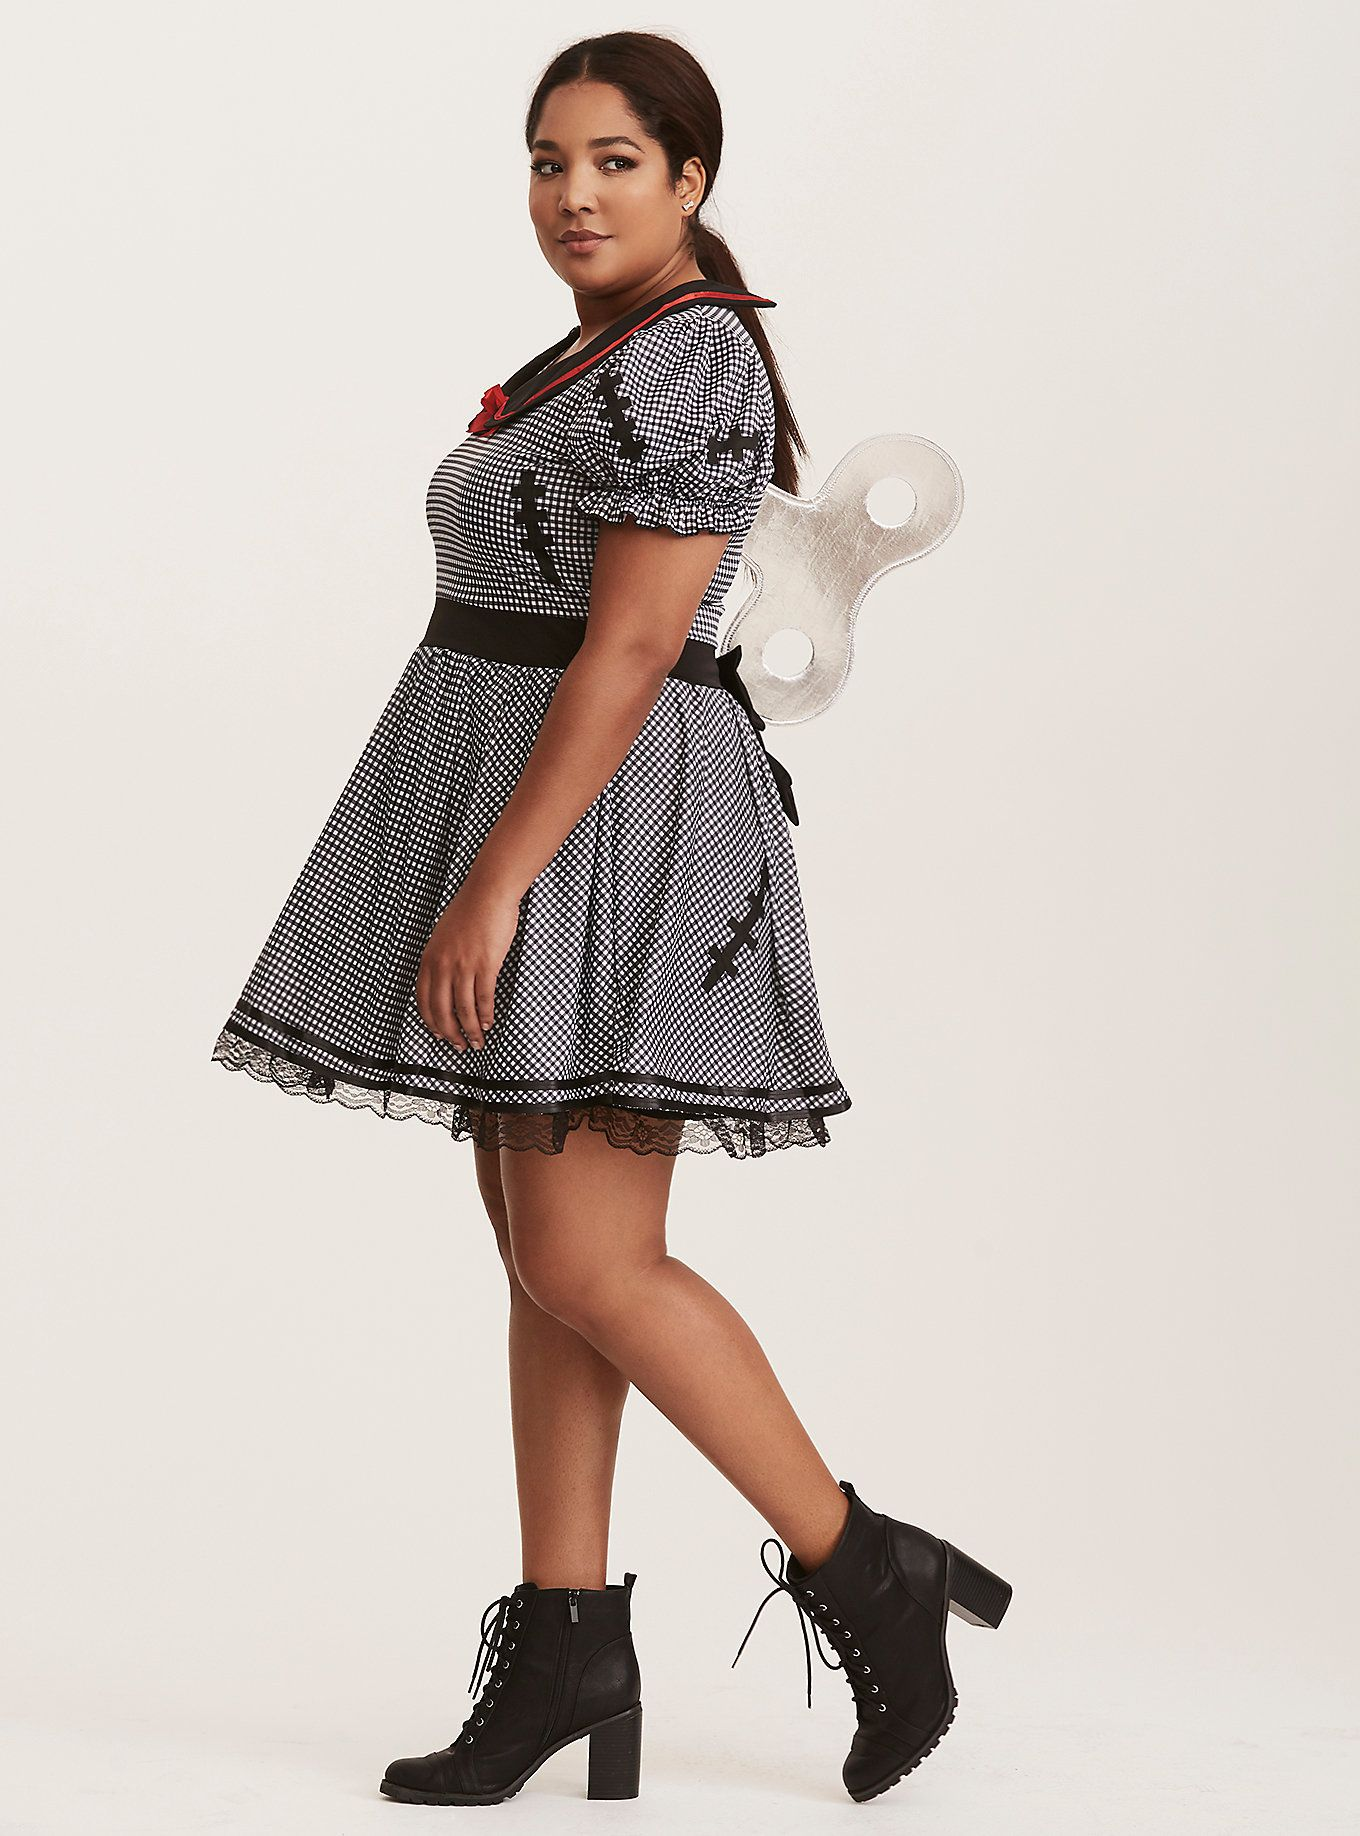 Leg Avenue Halloween Dolly Gingham Costume Torrid (Plus